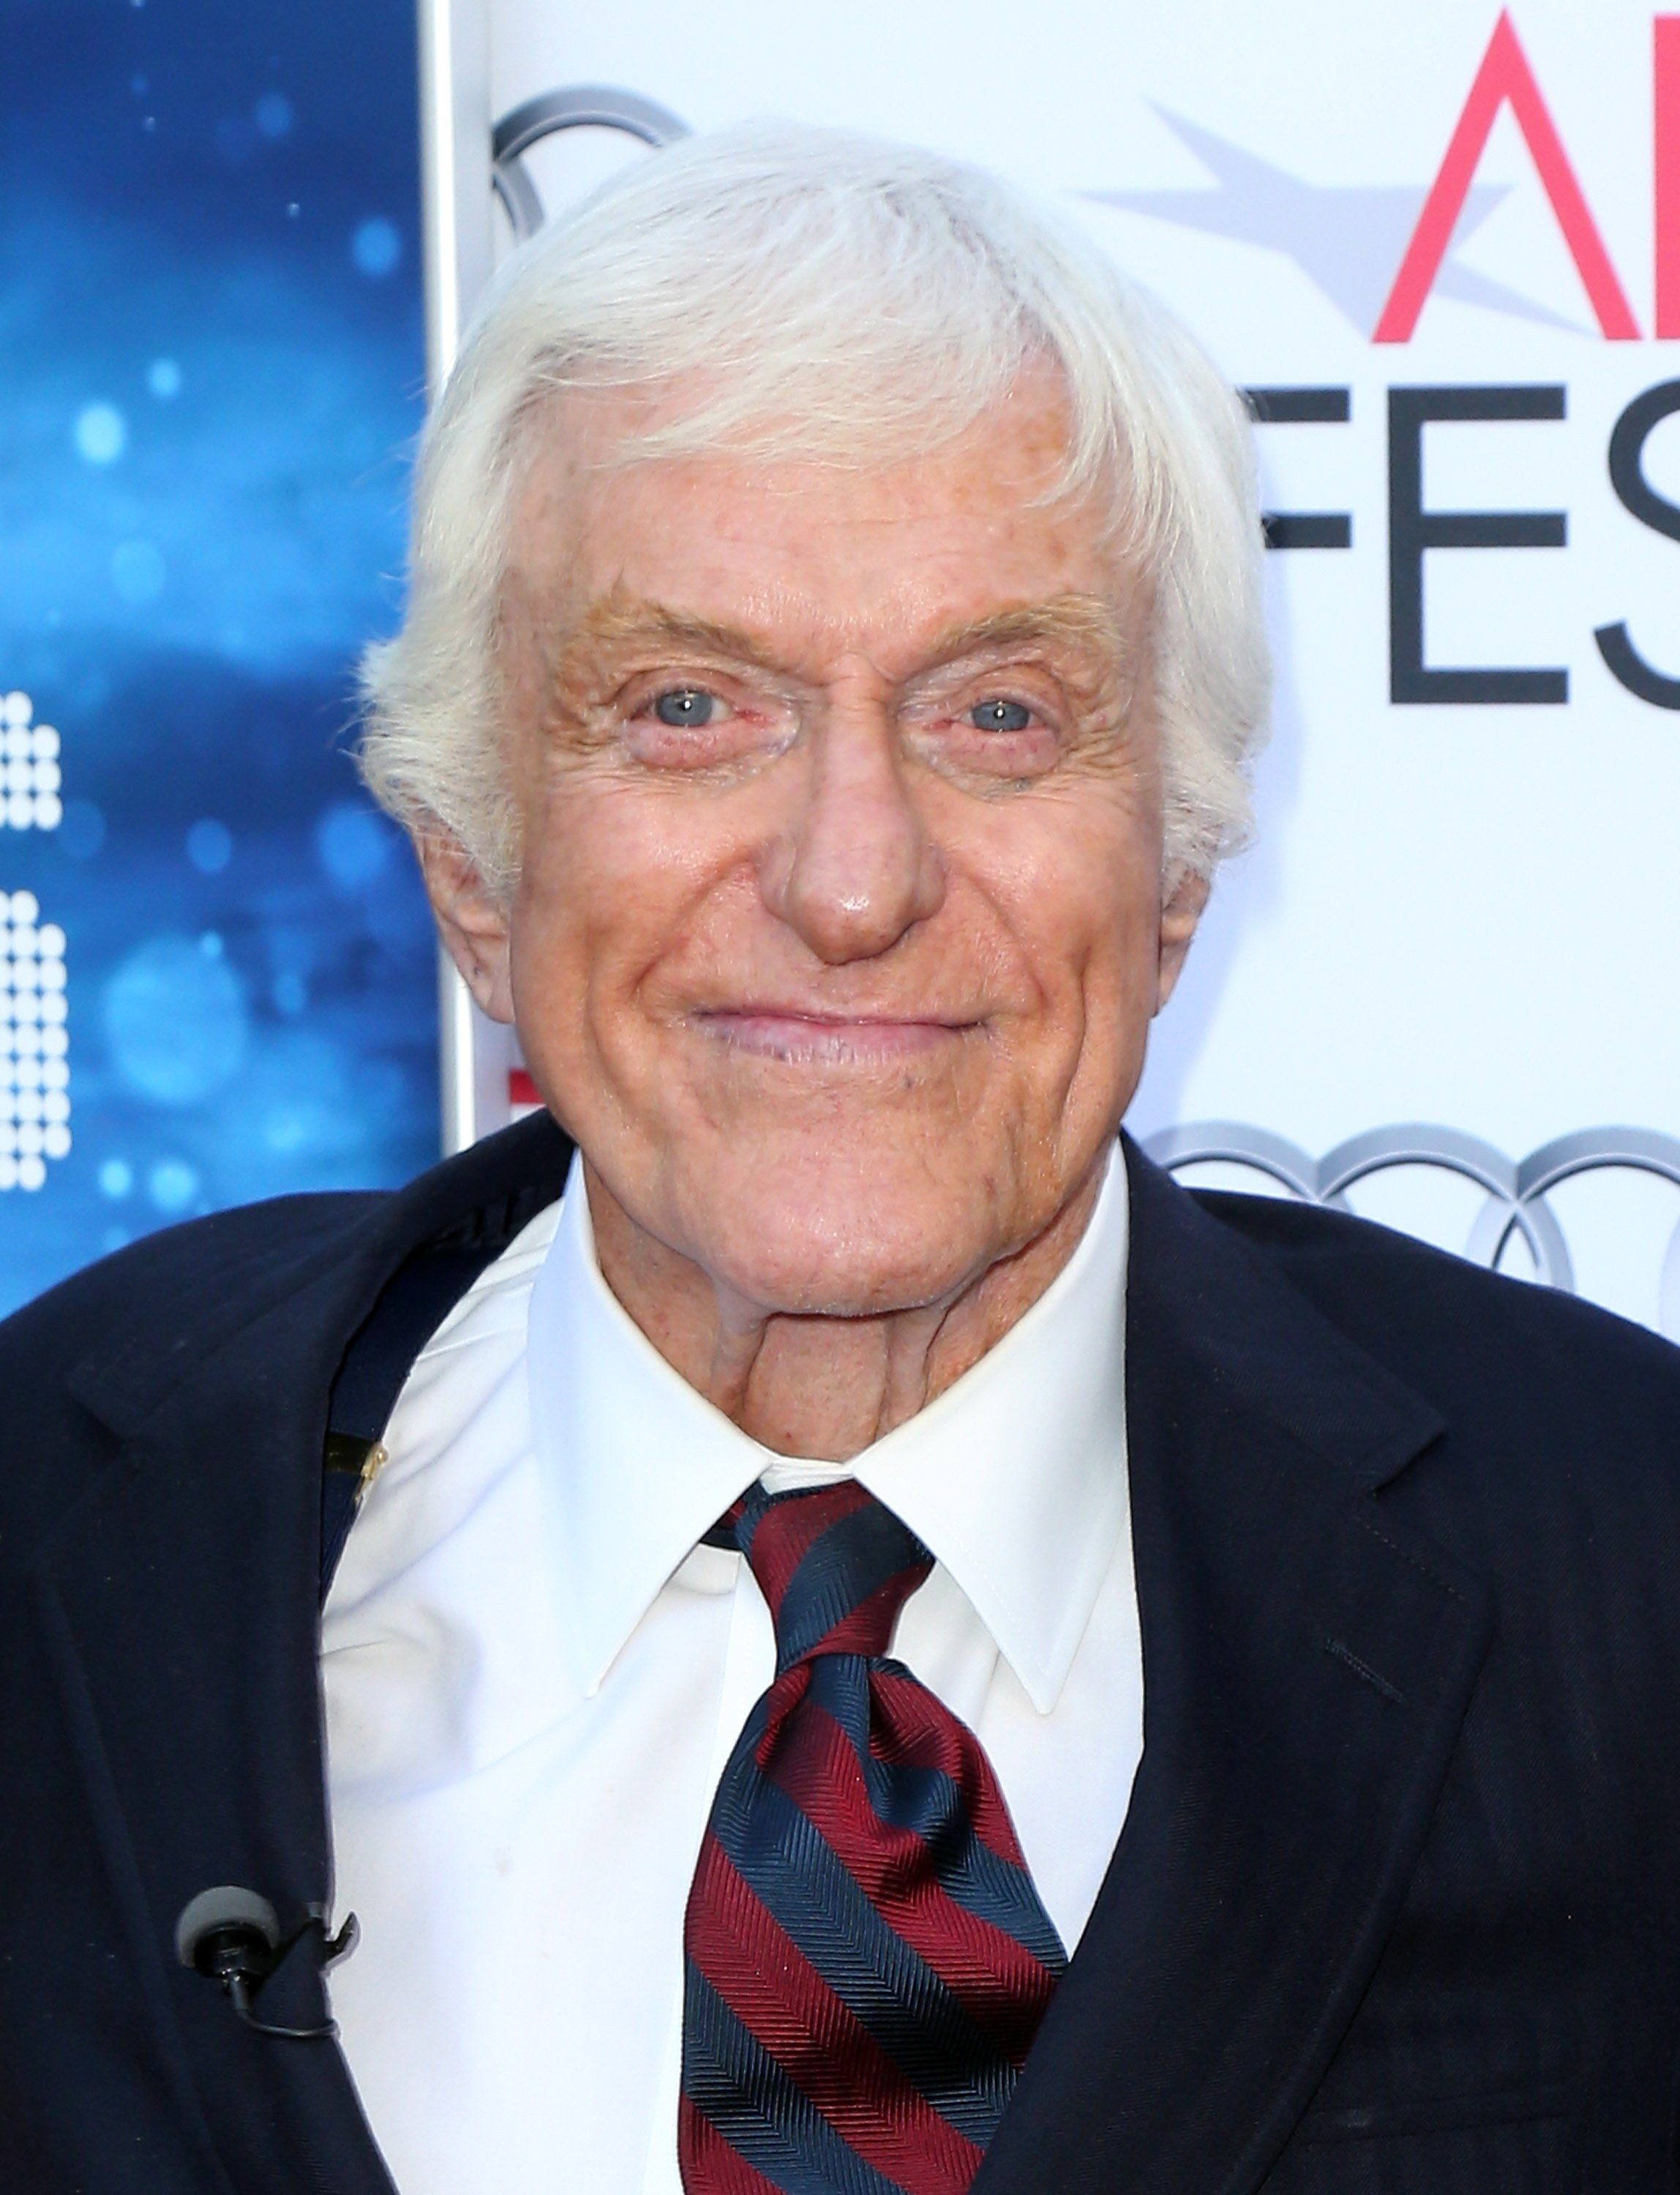 Dick Van Dyke attends the AFI Fest 2013 in Hollywood, California on November 9, 2013 | Photo: Getty Images